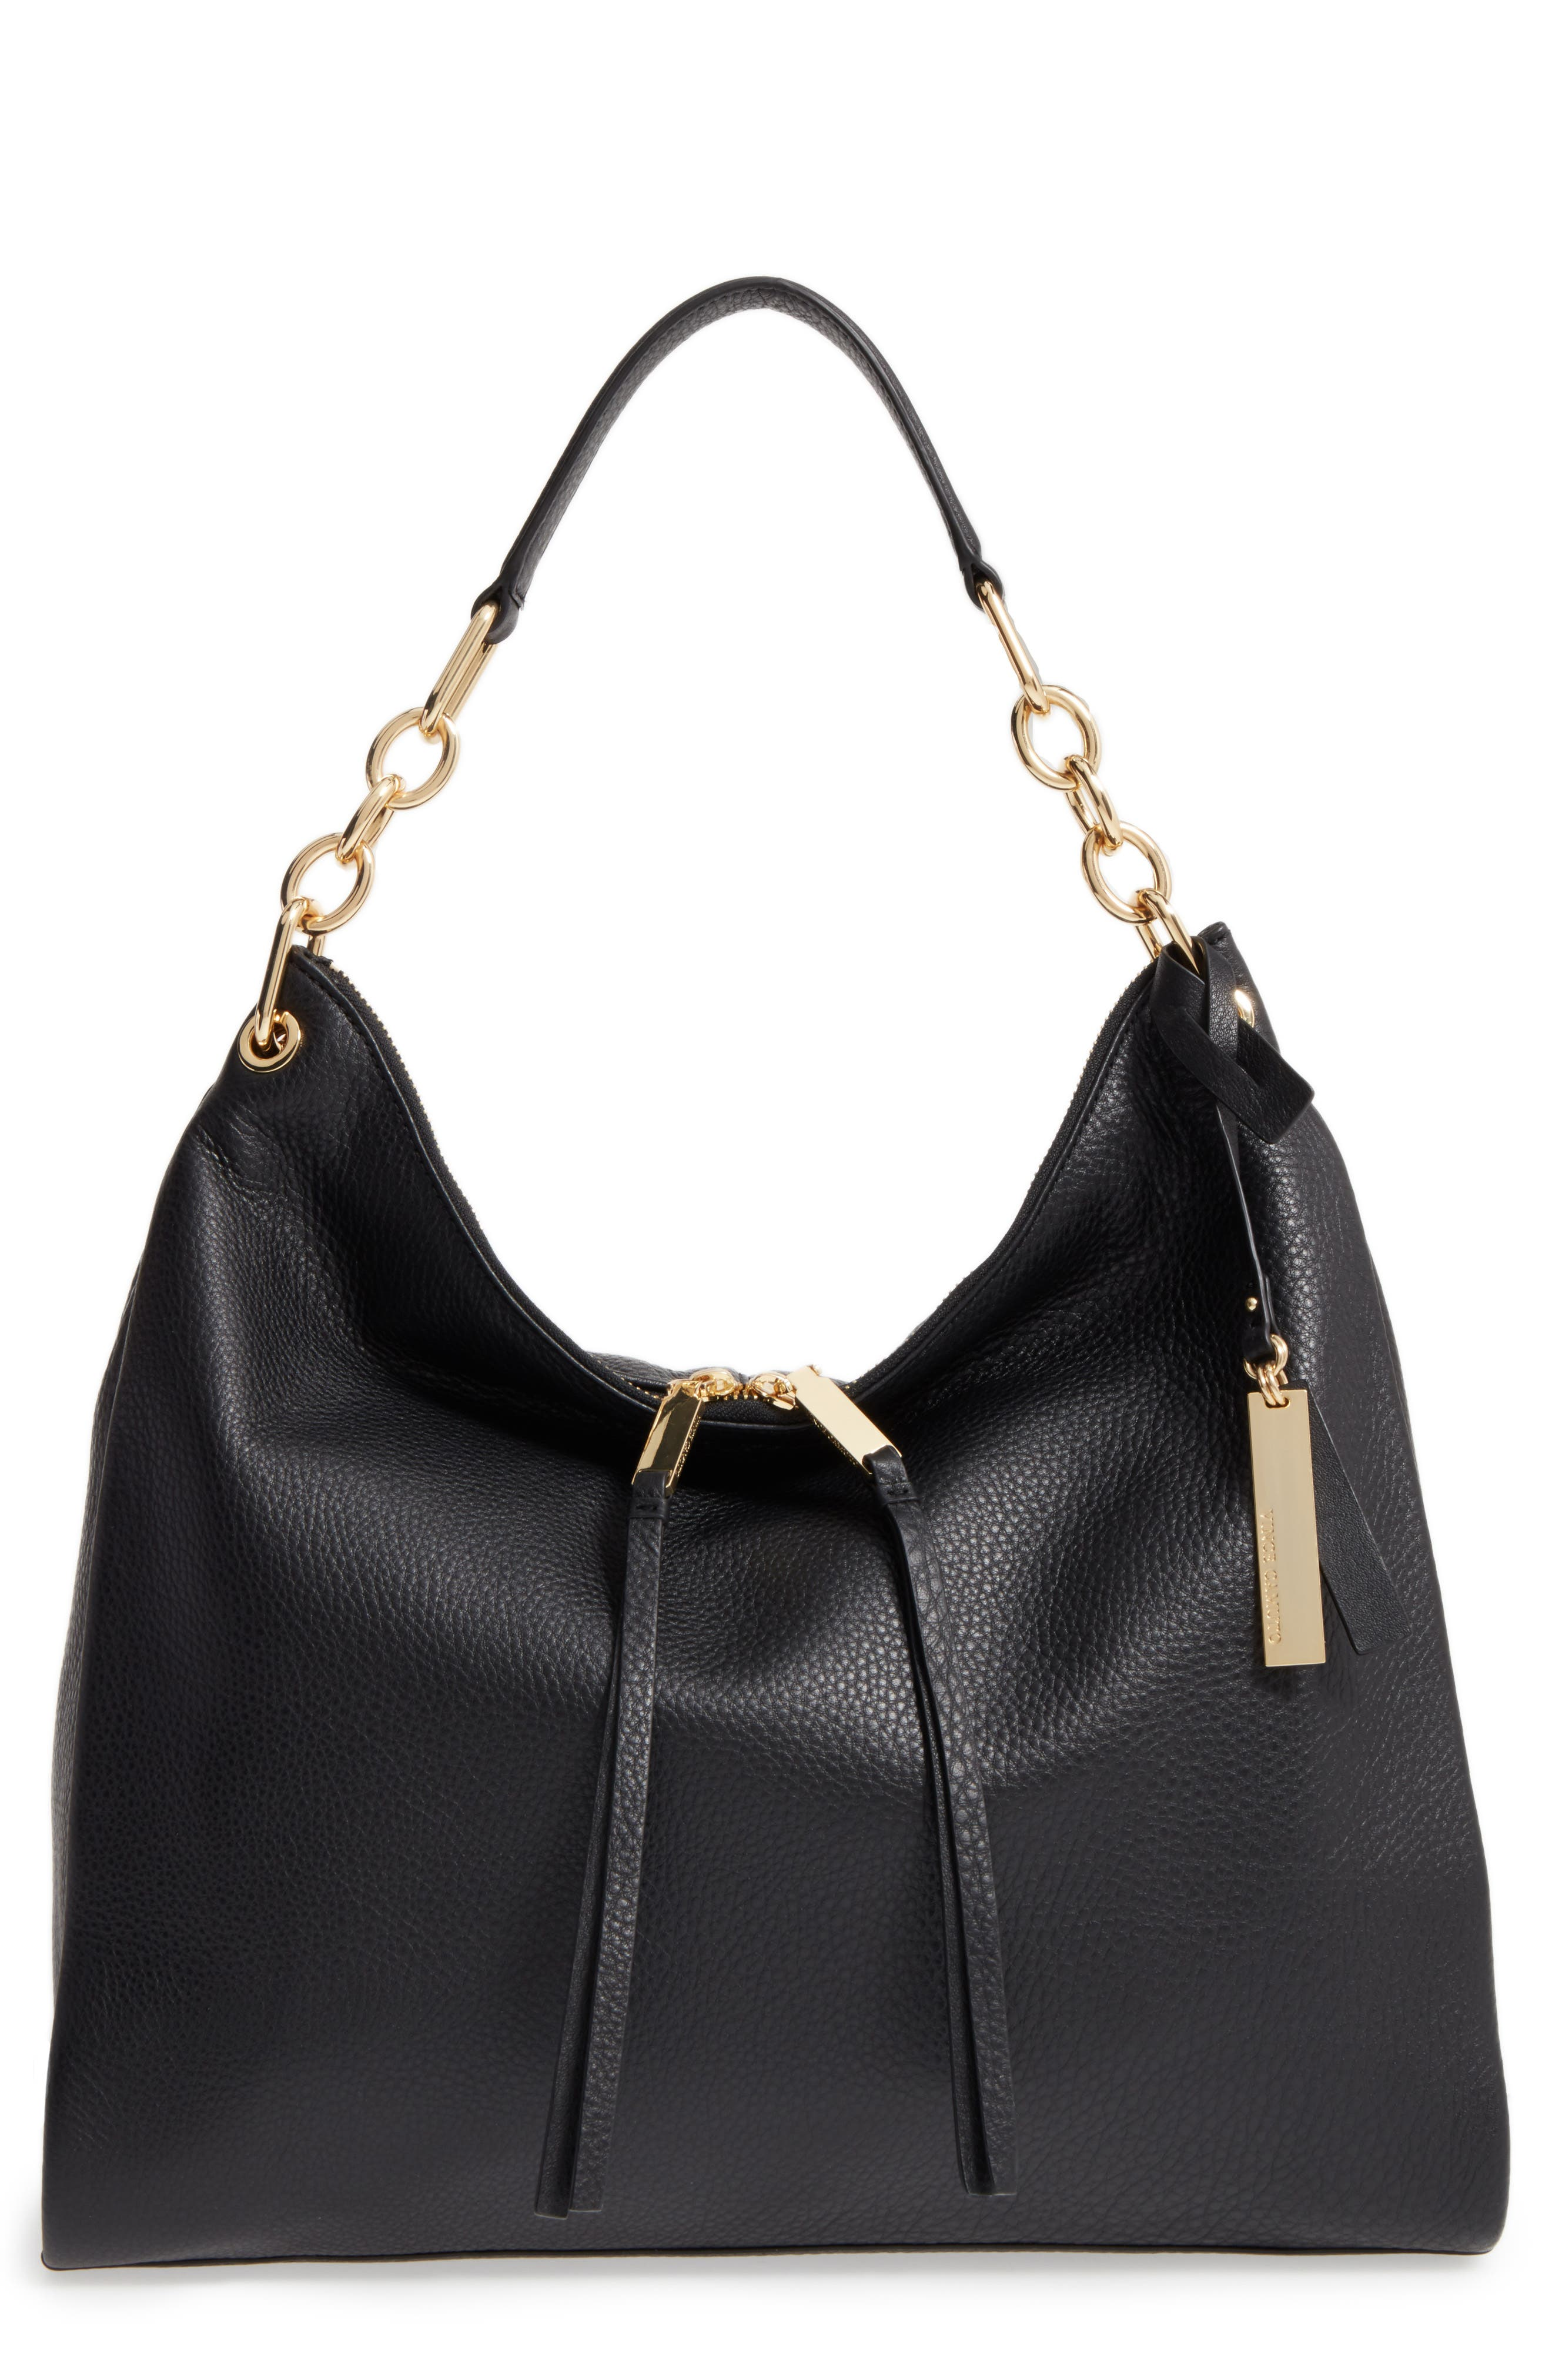 Alternate Image 1 Selected - Vince Camuto Avin Leather Hobo